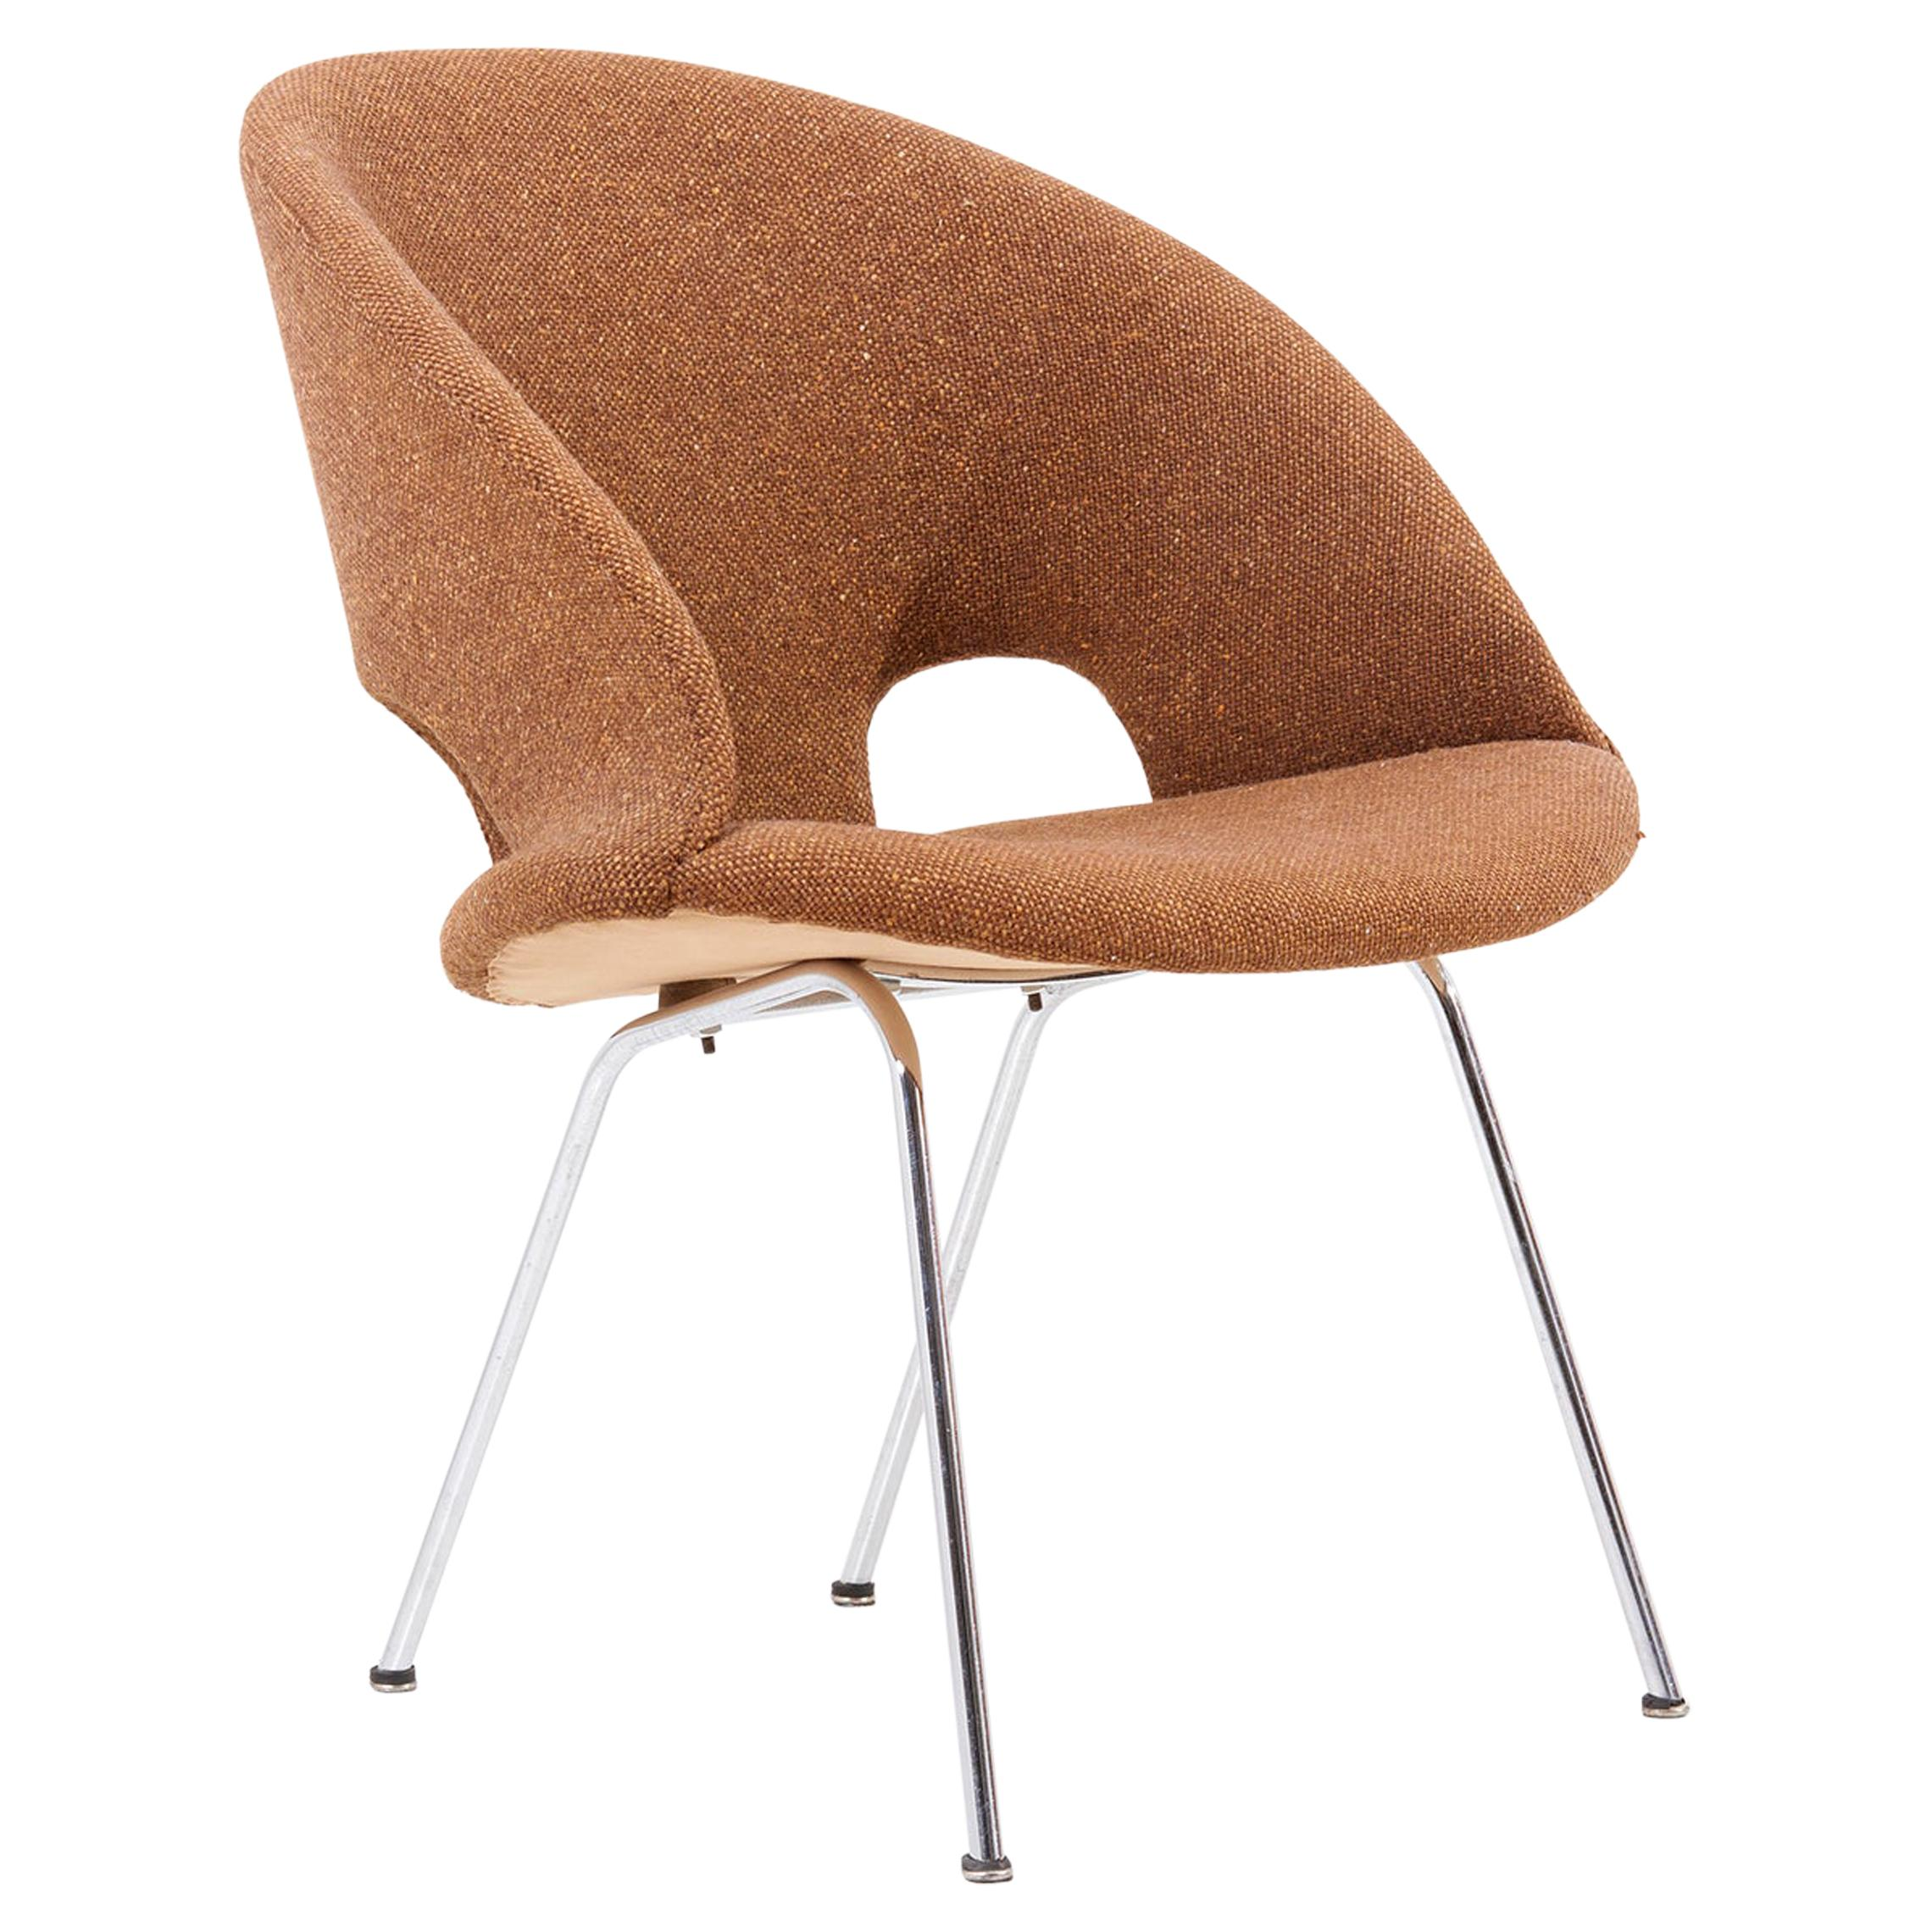 Model 350 Lounge Chair by Arno Votteler for Walter Knoll, Germany, 1950s